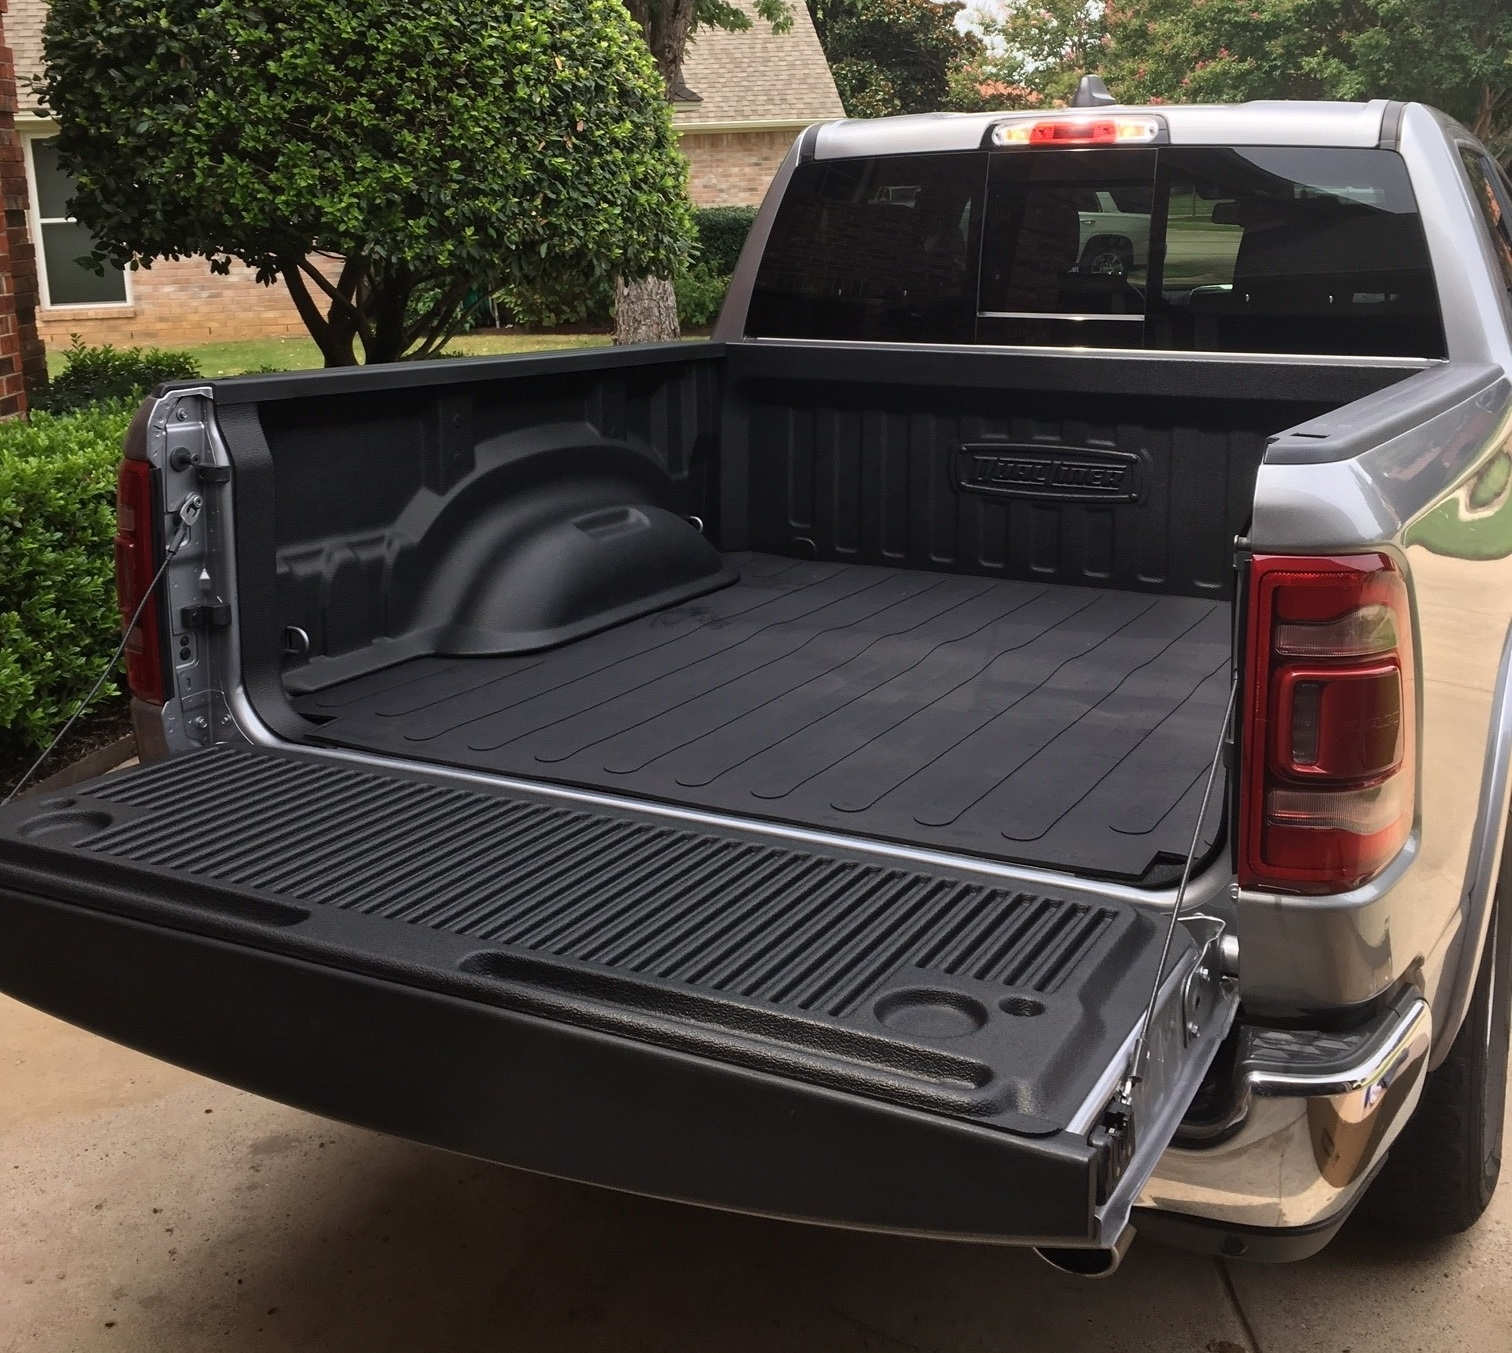 "2019 - 2020 Dodge Ram 1500 Bed Liner - 6' 4"" Bedliner For Sale"